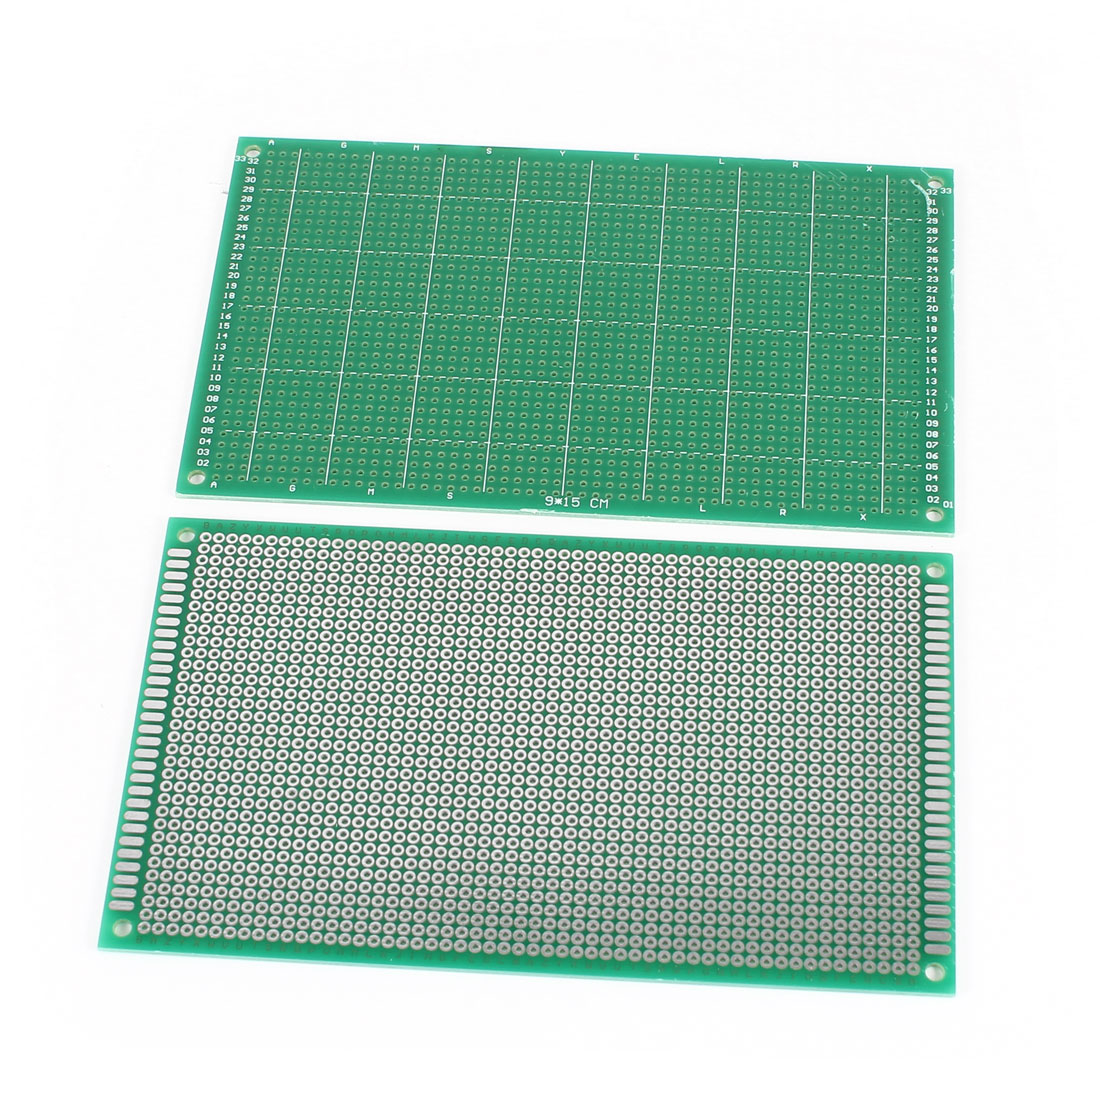 2 PCS 9cm x 15cm Single Sided FR-4 Prototype Paper Tinned Universal PCB Print Circuit Board for DIY